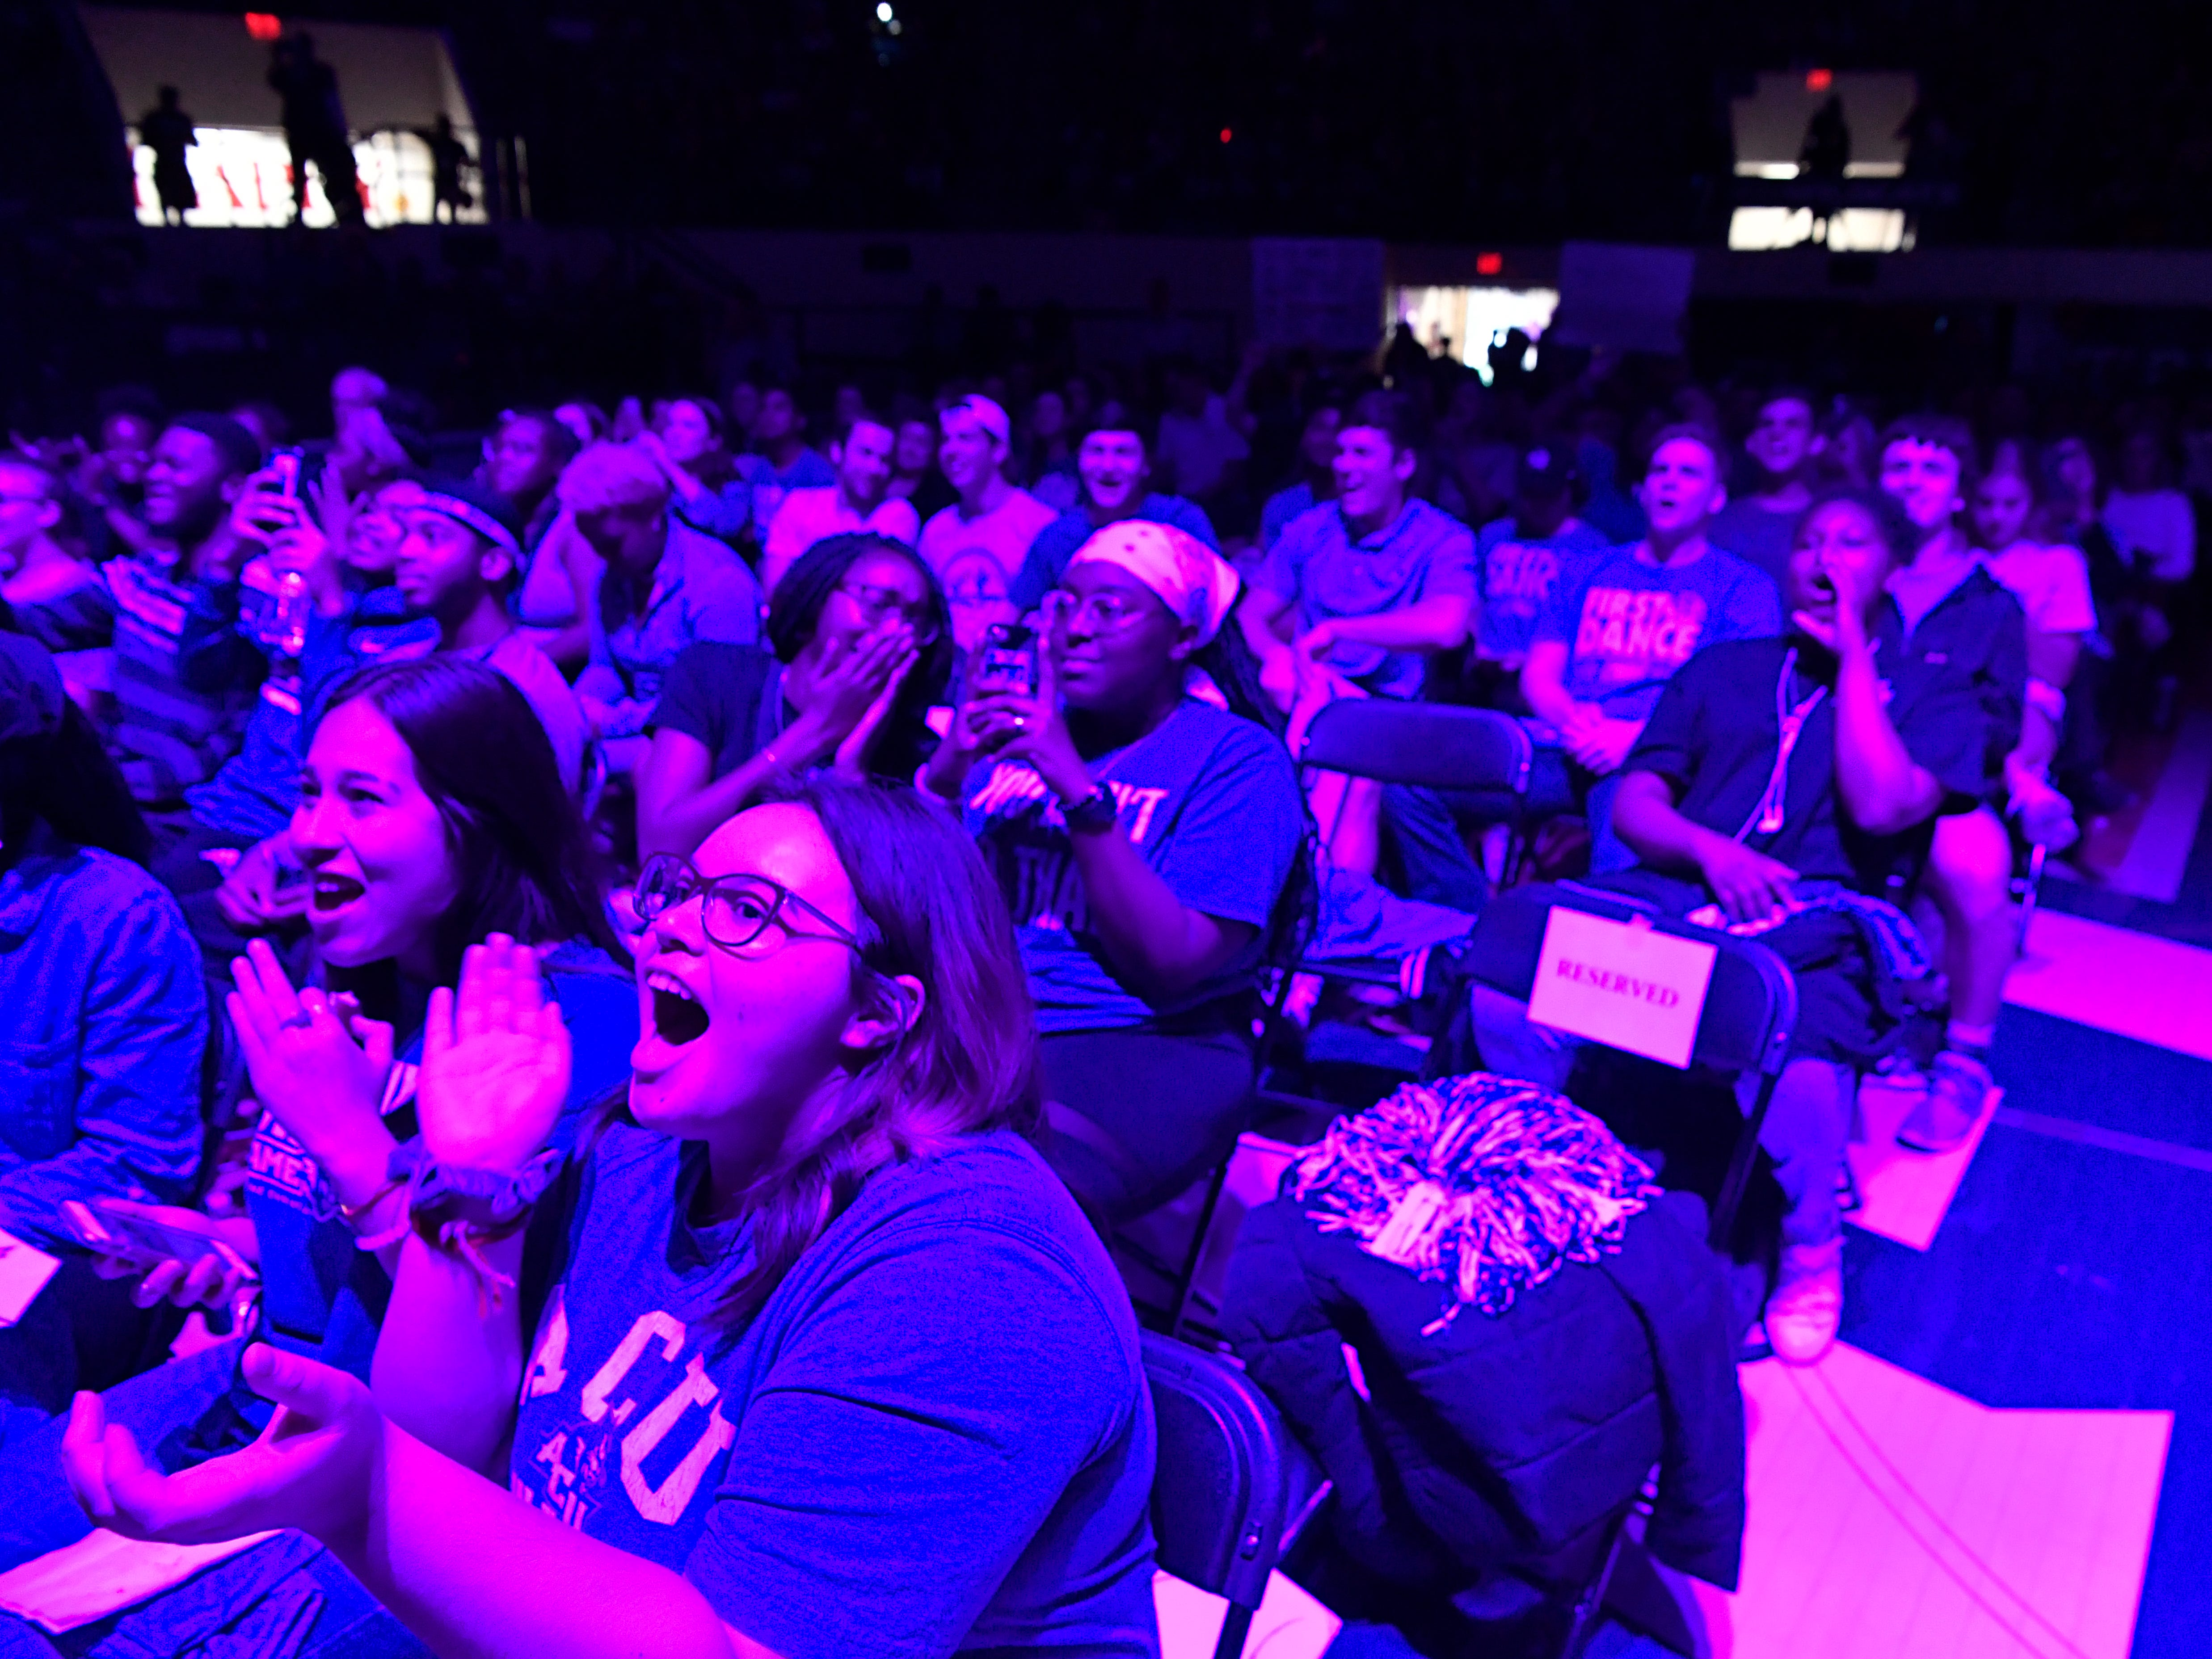 Abilene Christian University fans cheer on their Wildcats during a watch party at Moody Coliseum for the first round of the NCAA Men's Tournament Thursday March 21, 2019. ACU took on basketball powerhouse University of Kentucky, ending their first-ever trip to the tournament with a loss to UK, 79-44.